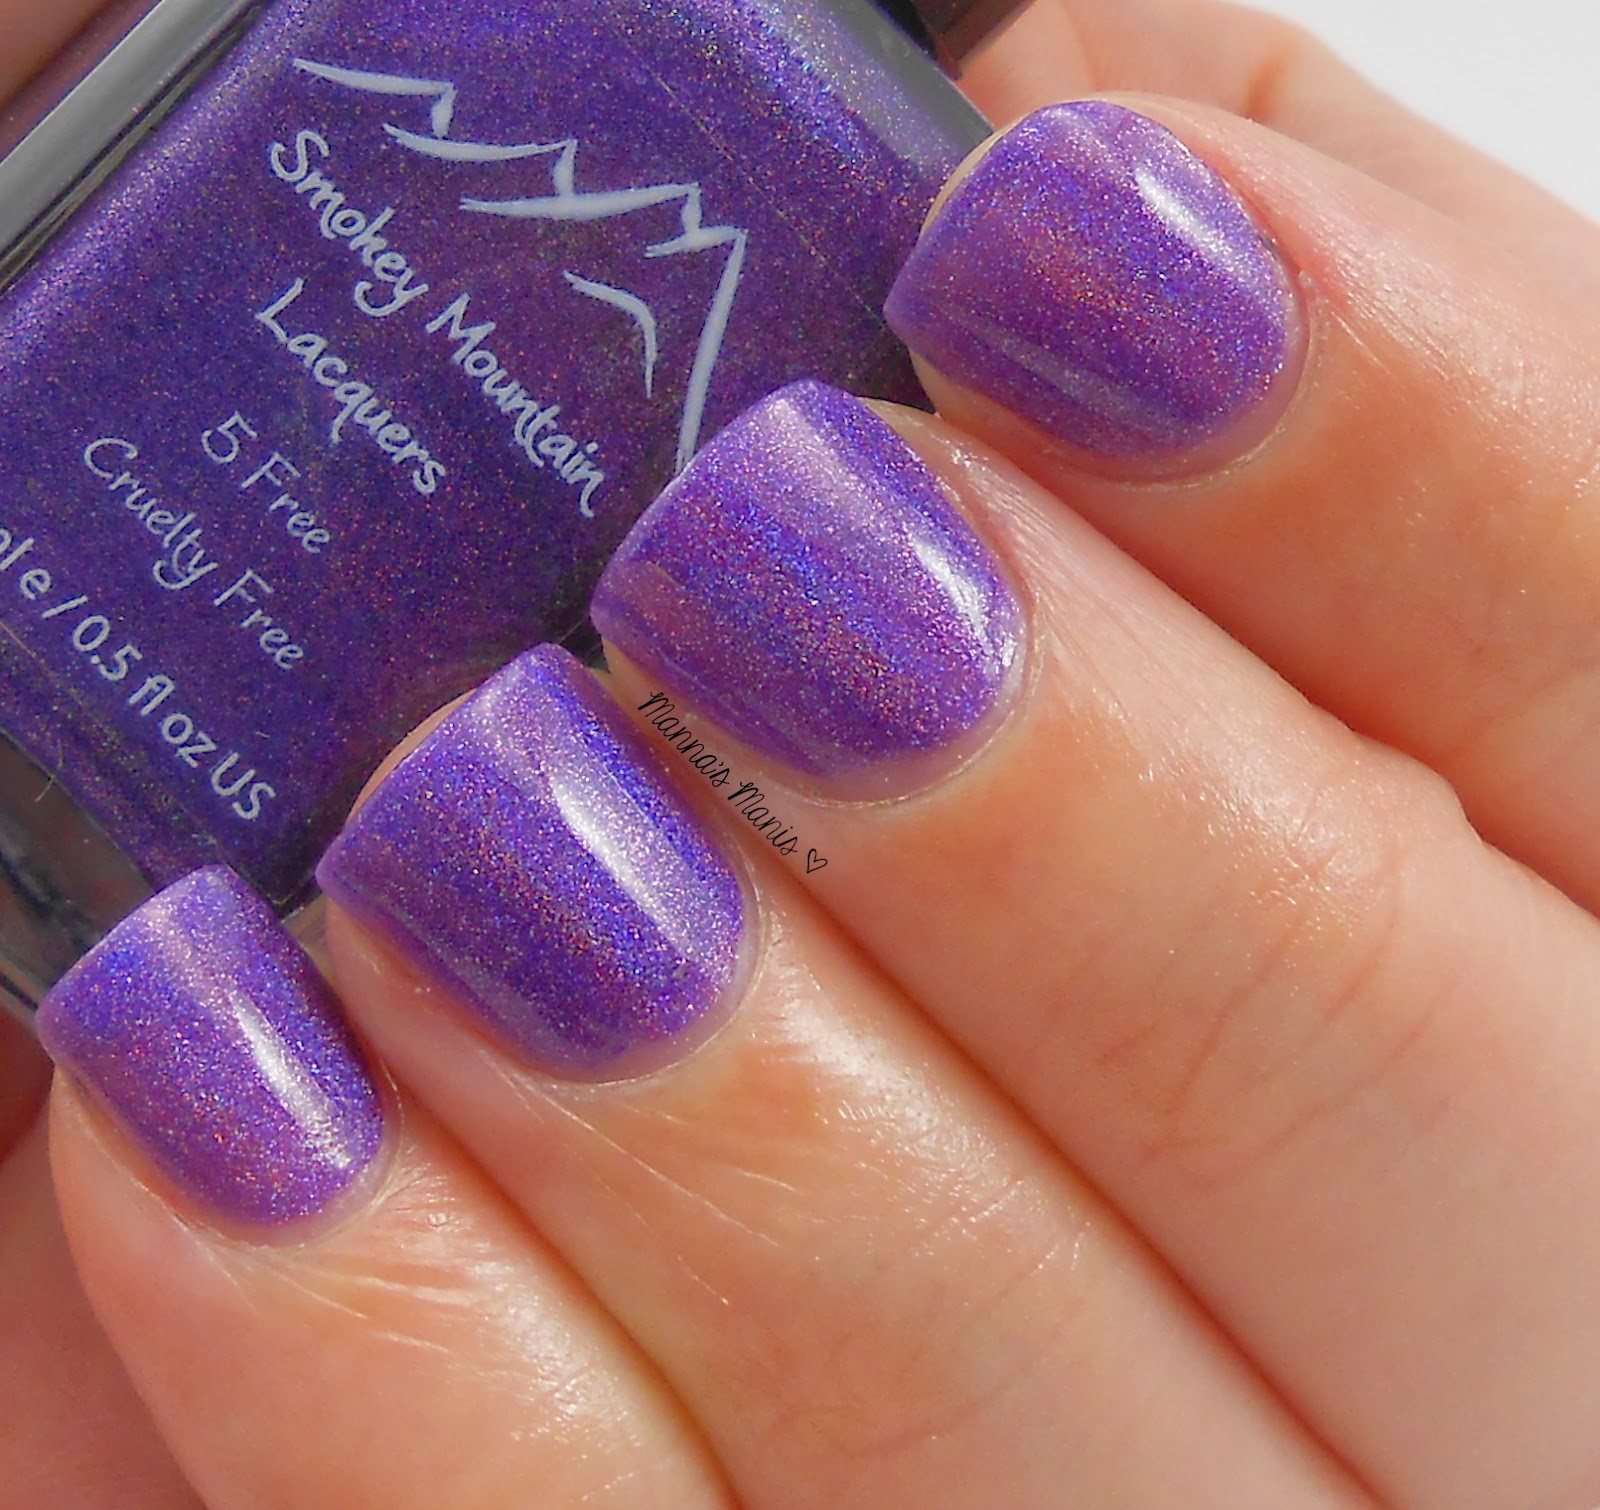 smokey mountain lacquers plumtastic, a purple holographic nail polish